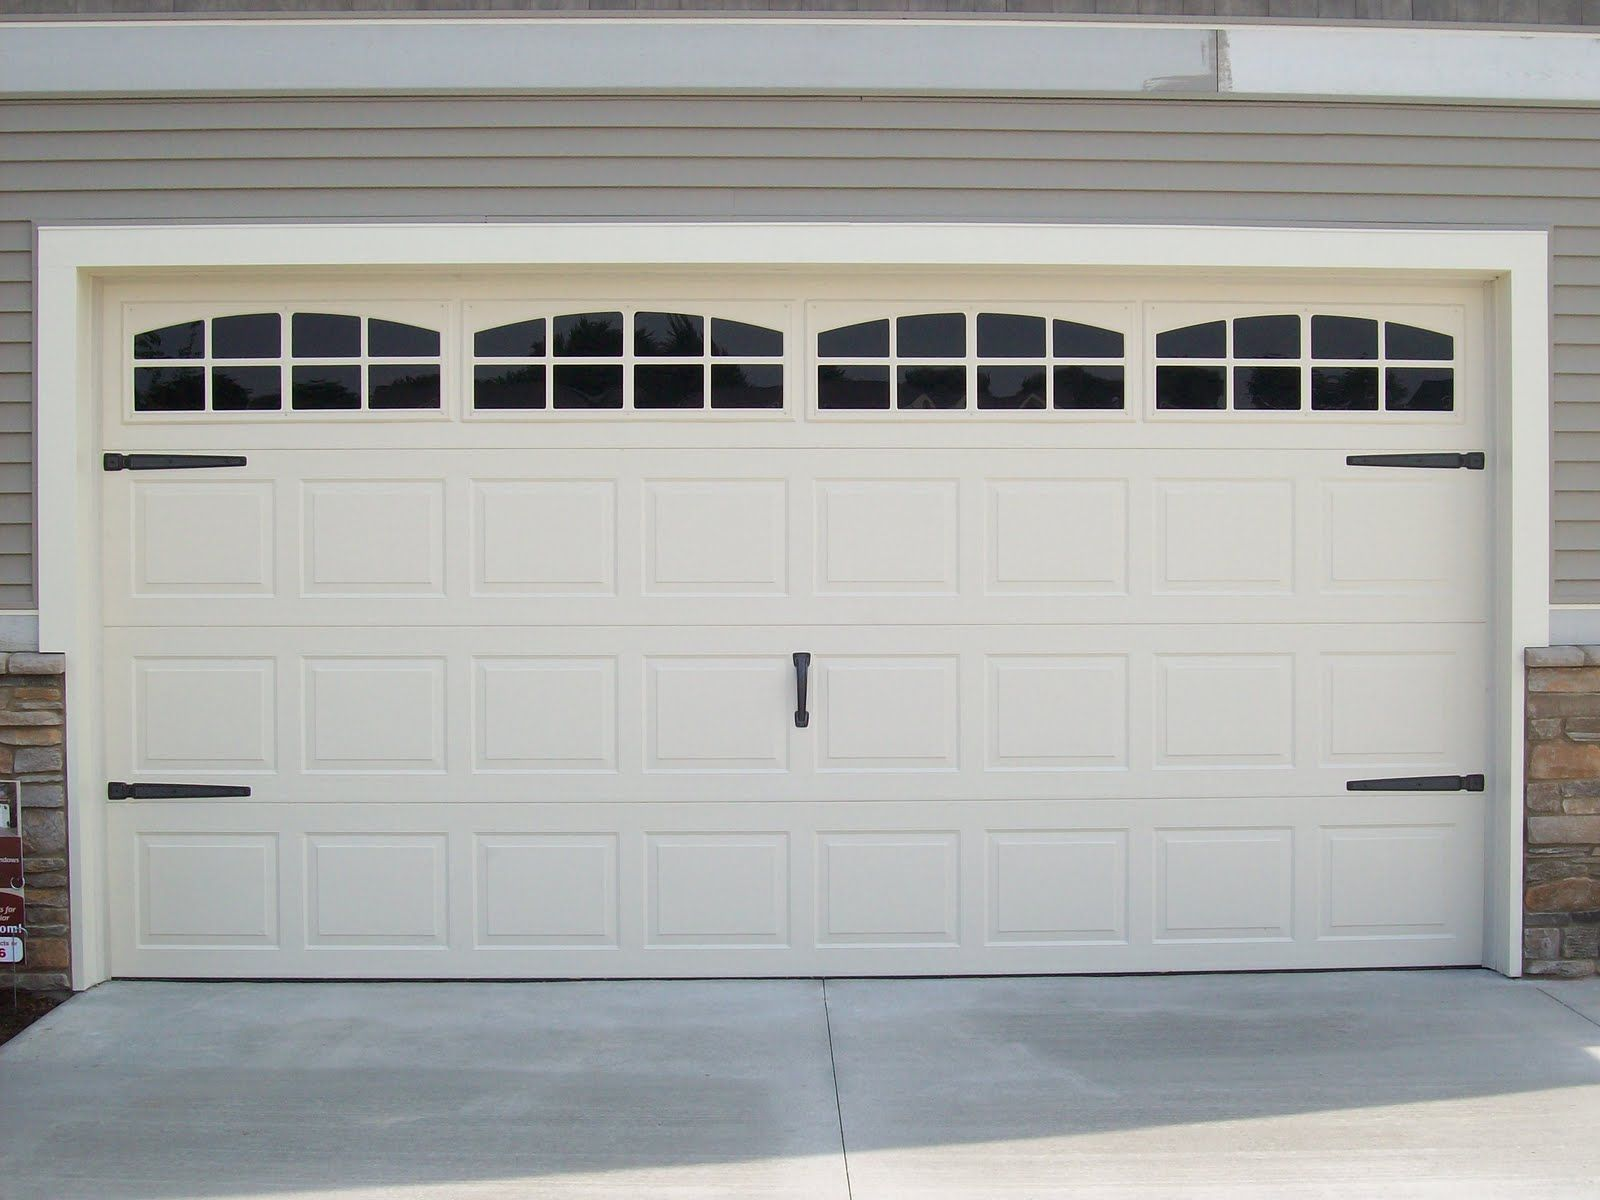 Coach house accents diy makeover your garage door with coach coach house accents diy makeover your garage door with coach house accents 6699 rubansaba